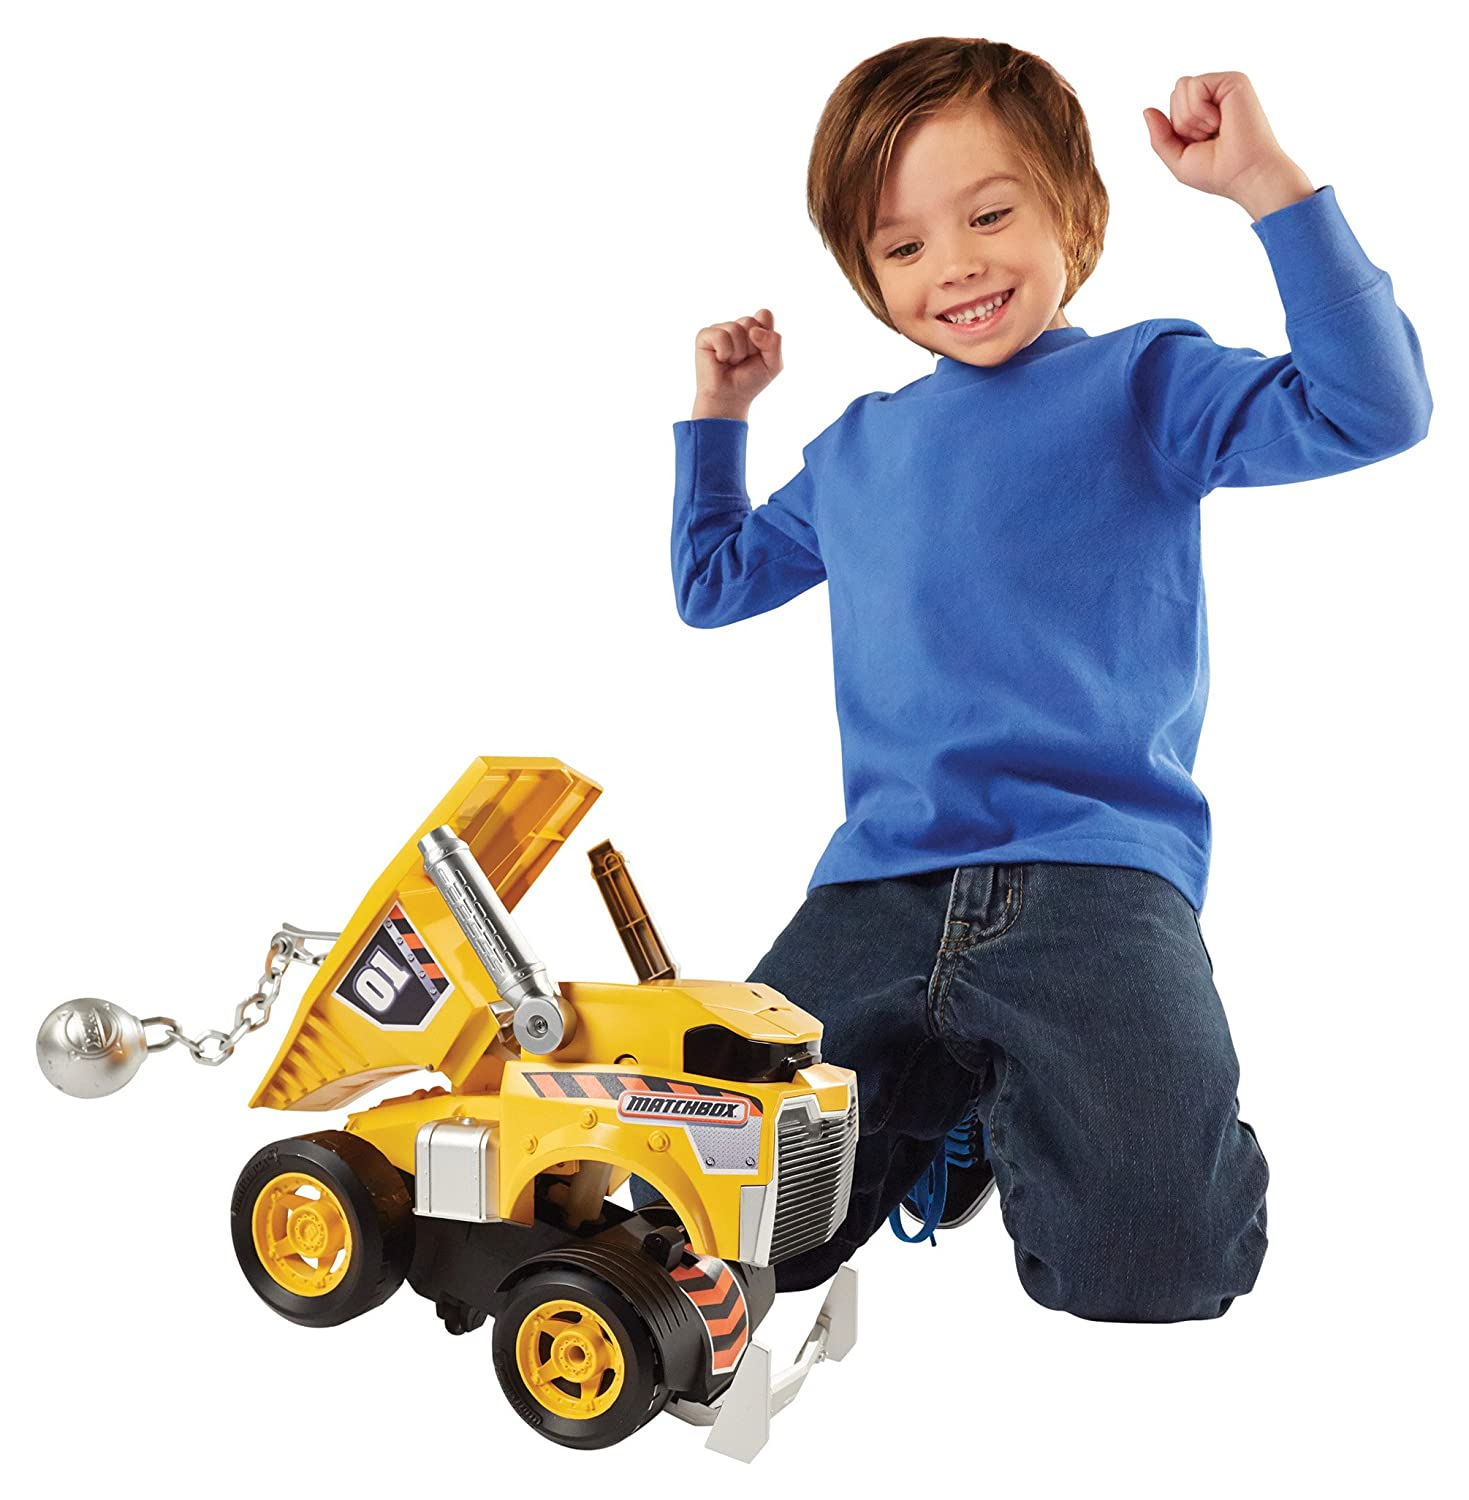 Walmart Toys For Boys : Matchbox wrecky the wrecking buddy off from amazon and